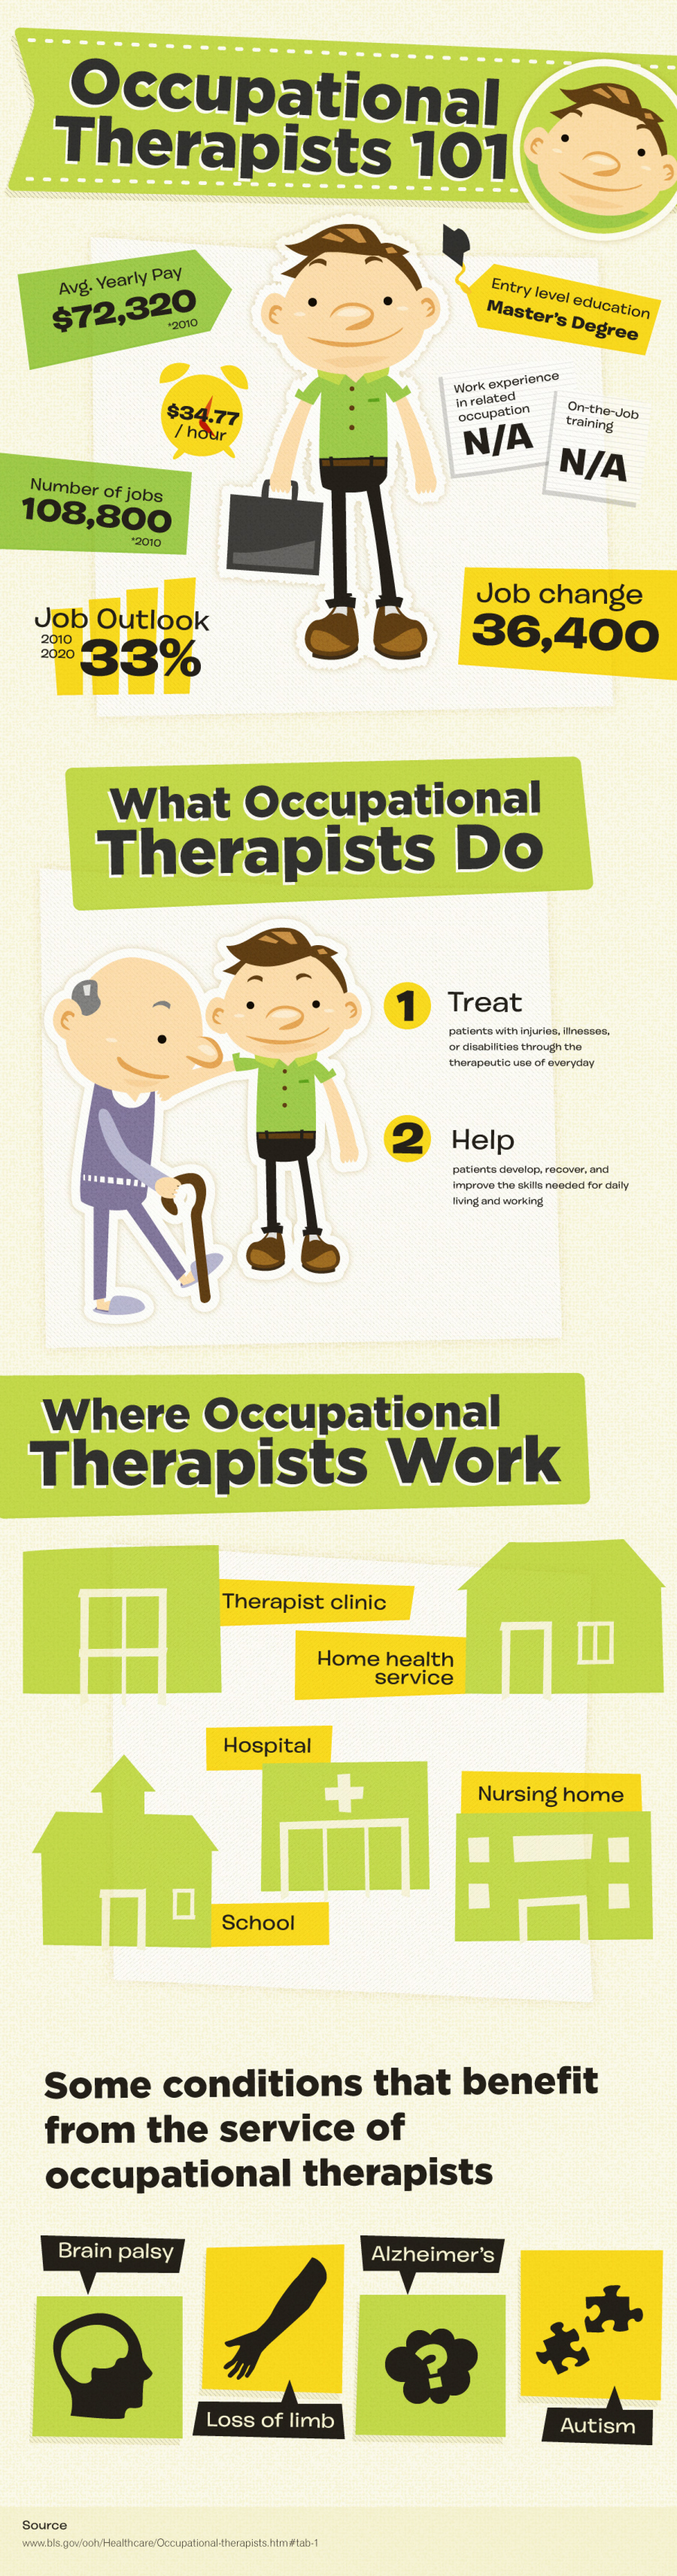 occupational-therapists-101_502918d16690